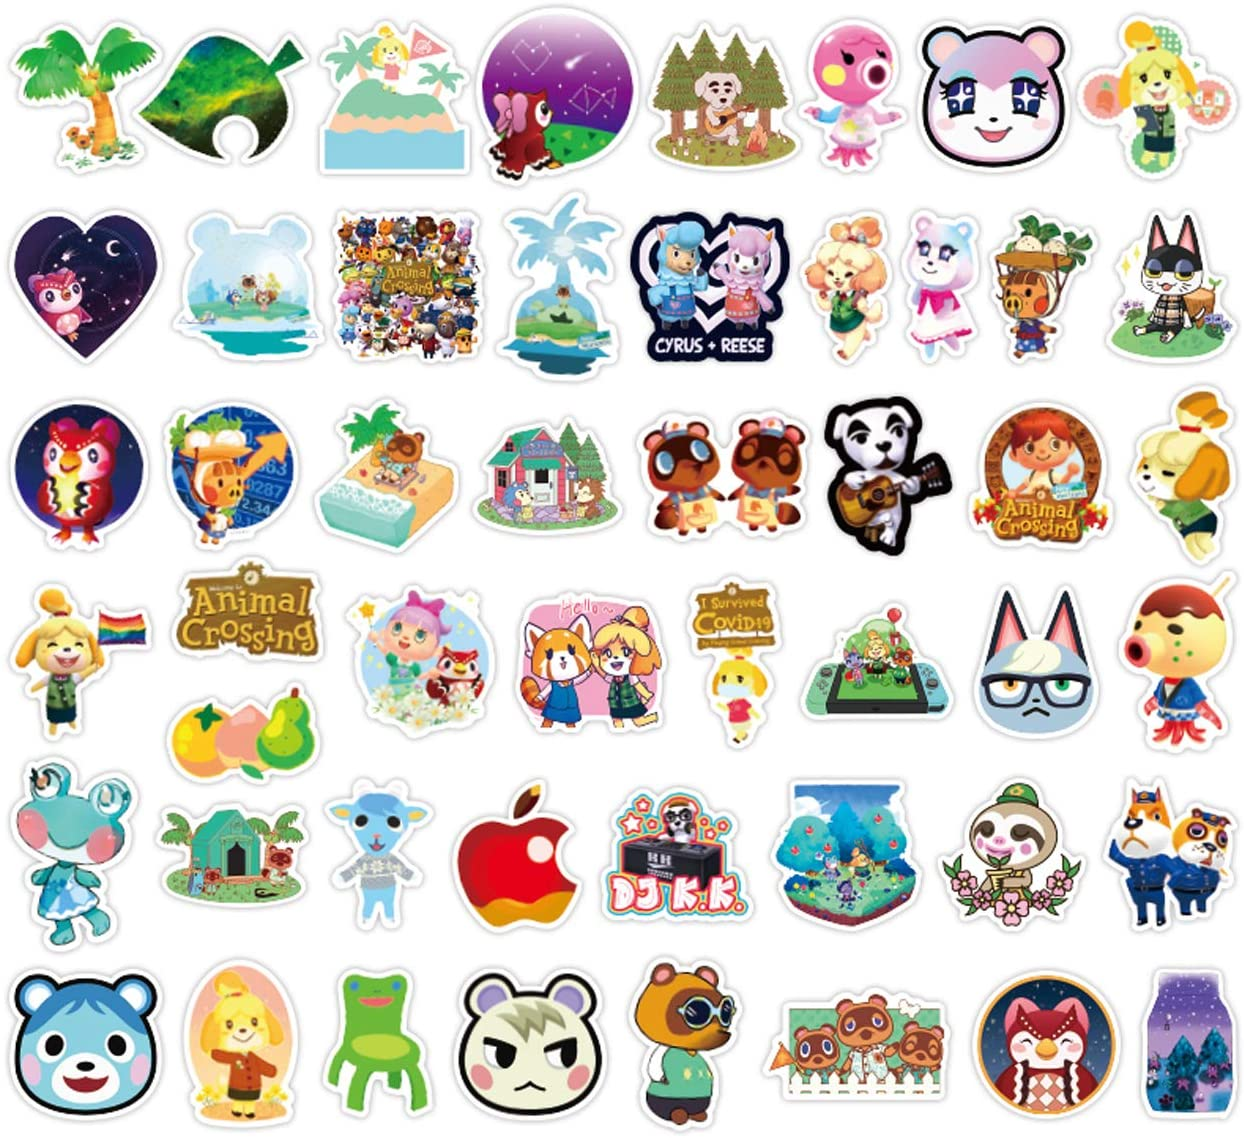 150pcs Animal Crossing Stickers Anime Gaming Stickers for Adults Teens Kids Waterproof Vinyl Stickers for Water Bottle Laptop Skateboard Snowboard Luggage Guitar Decor